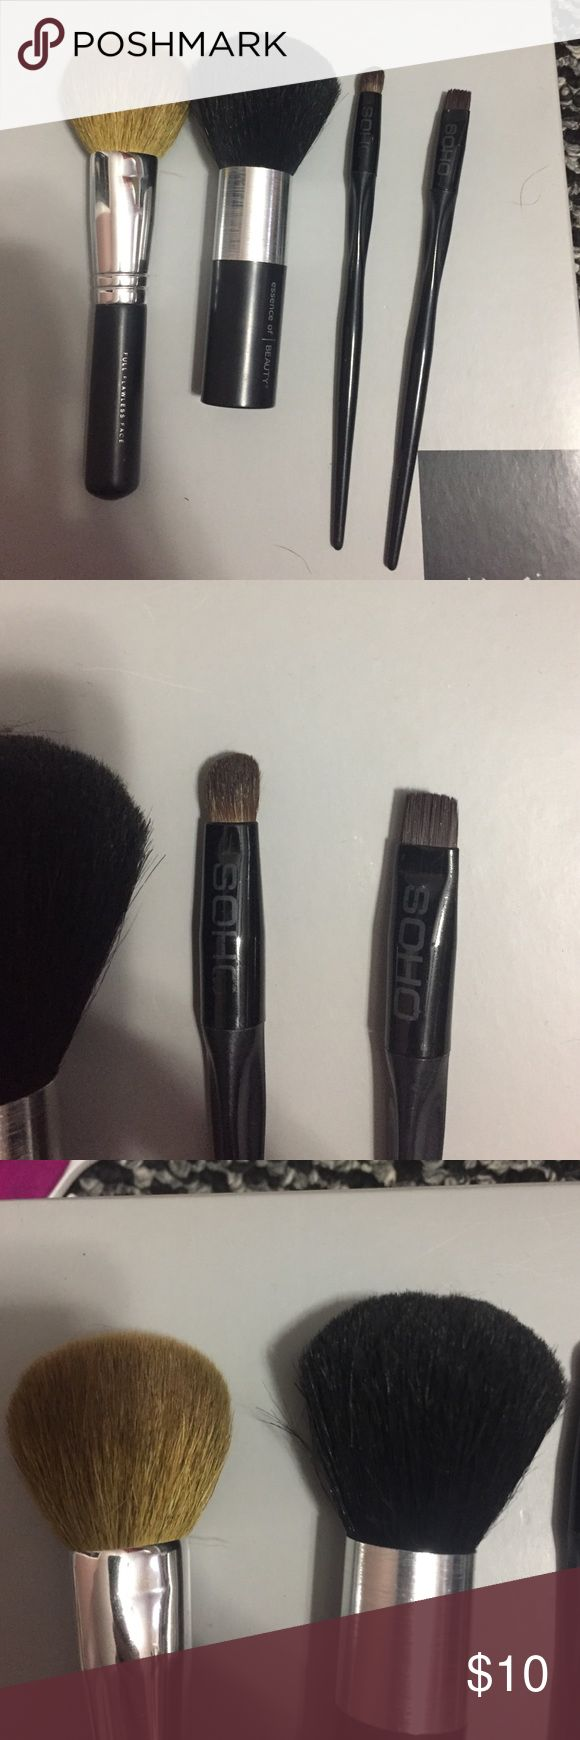 Makeup brushes Selling makeup brushes! Use every gently great condition. bare minderals brush :blush/bronzer.    Essence of beauty :fluffy for bronzer or all over face setting.  Soho : eye shadow brush/ liner or to define brows . Other